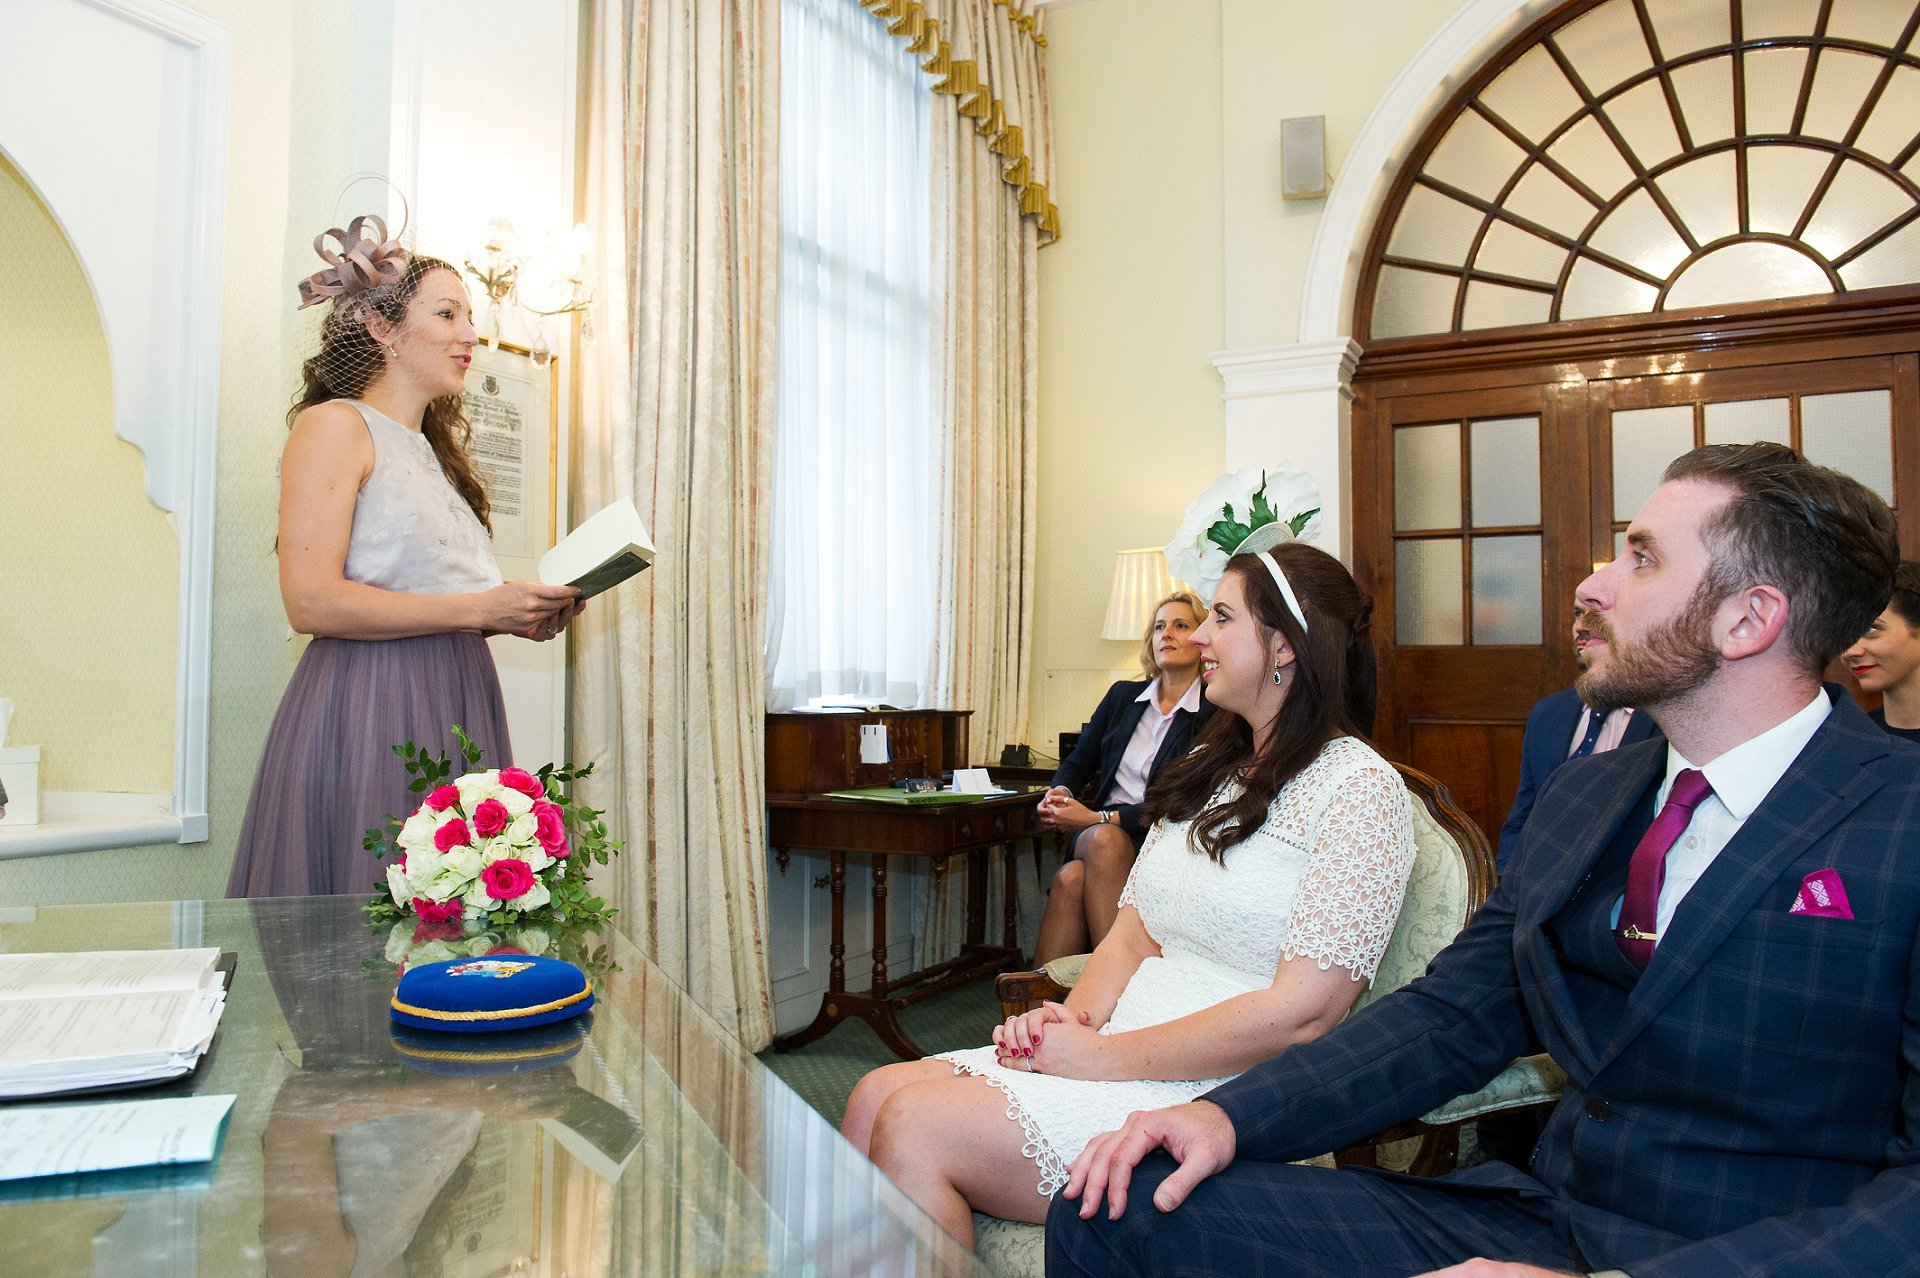 A wedding guest delivers a reading in the Rossetti Room - Chelsea Registry Office wedding photography by specilist Emma Duggan